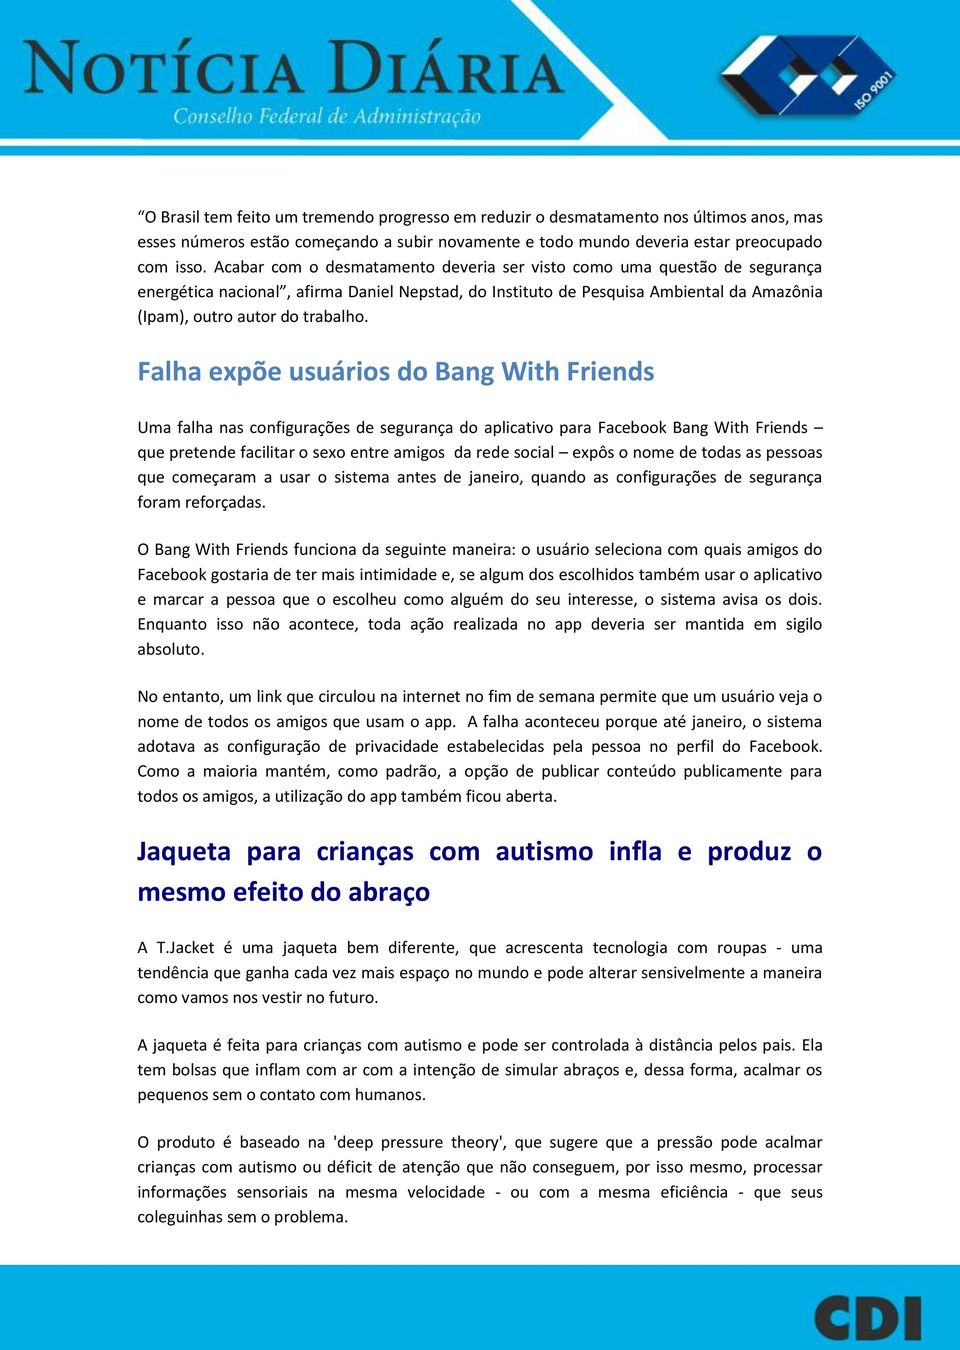 Falha expõe usuários do Bang With Friends Uma falha nas configurações de segurança do aplicativo para Facebook Bang With Friends que pretende facilitar o sexo entre amigos da rede social expôs o nome